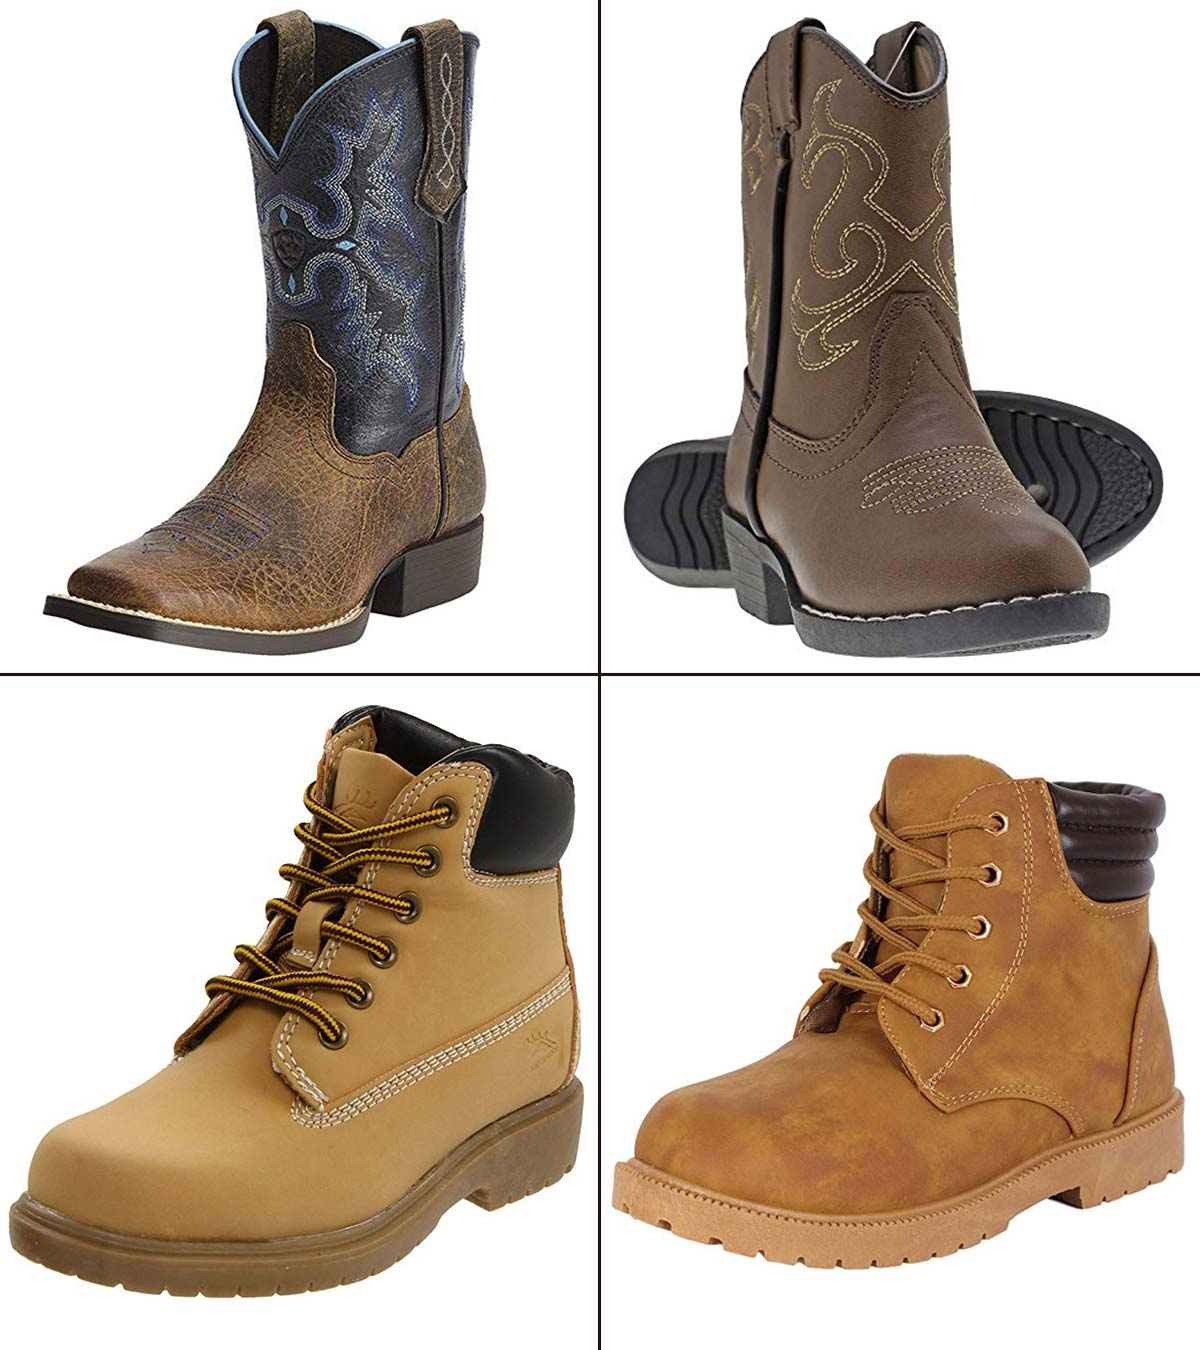 best place to buy work boots online